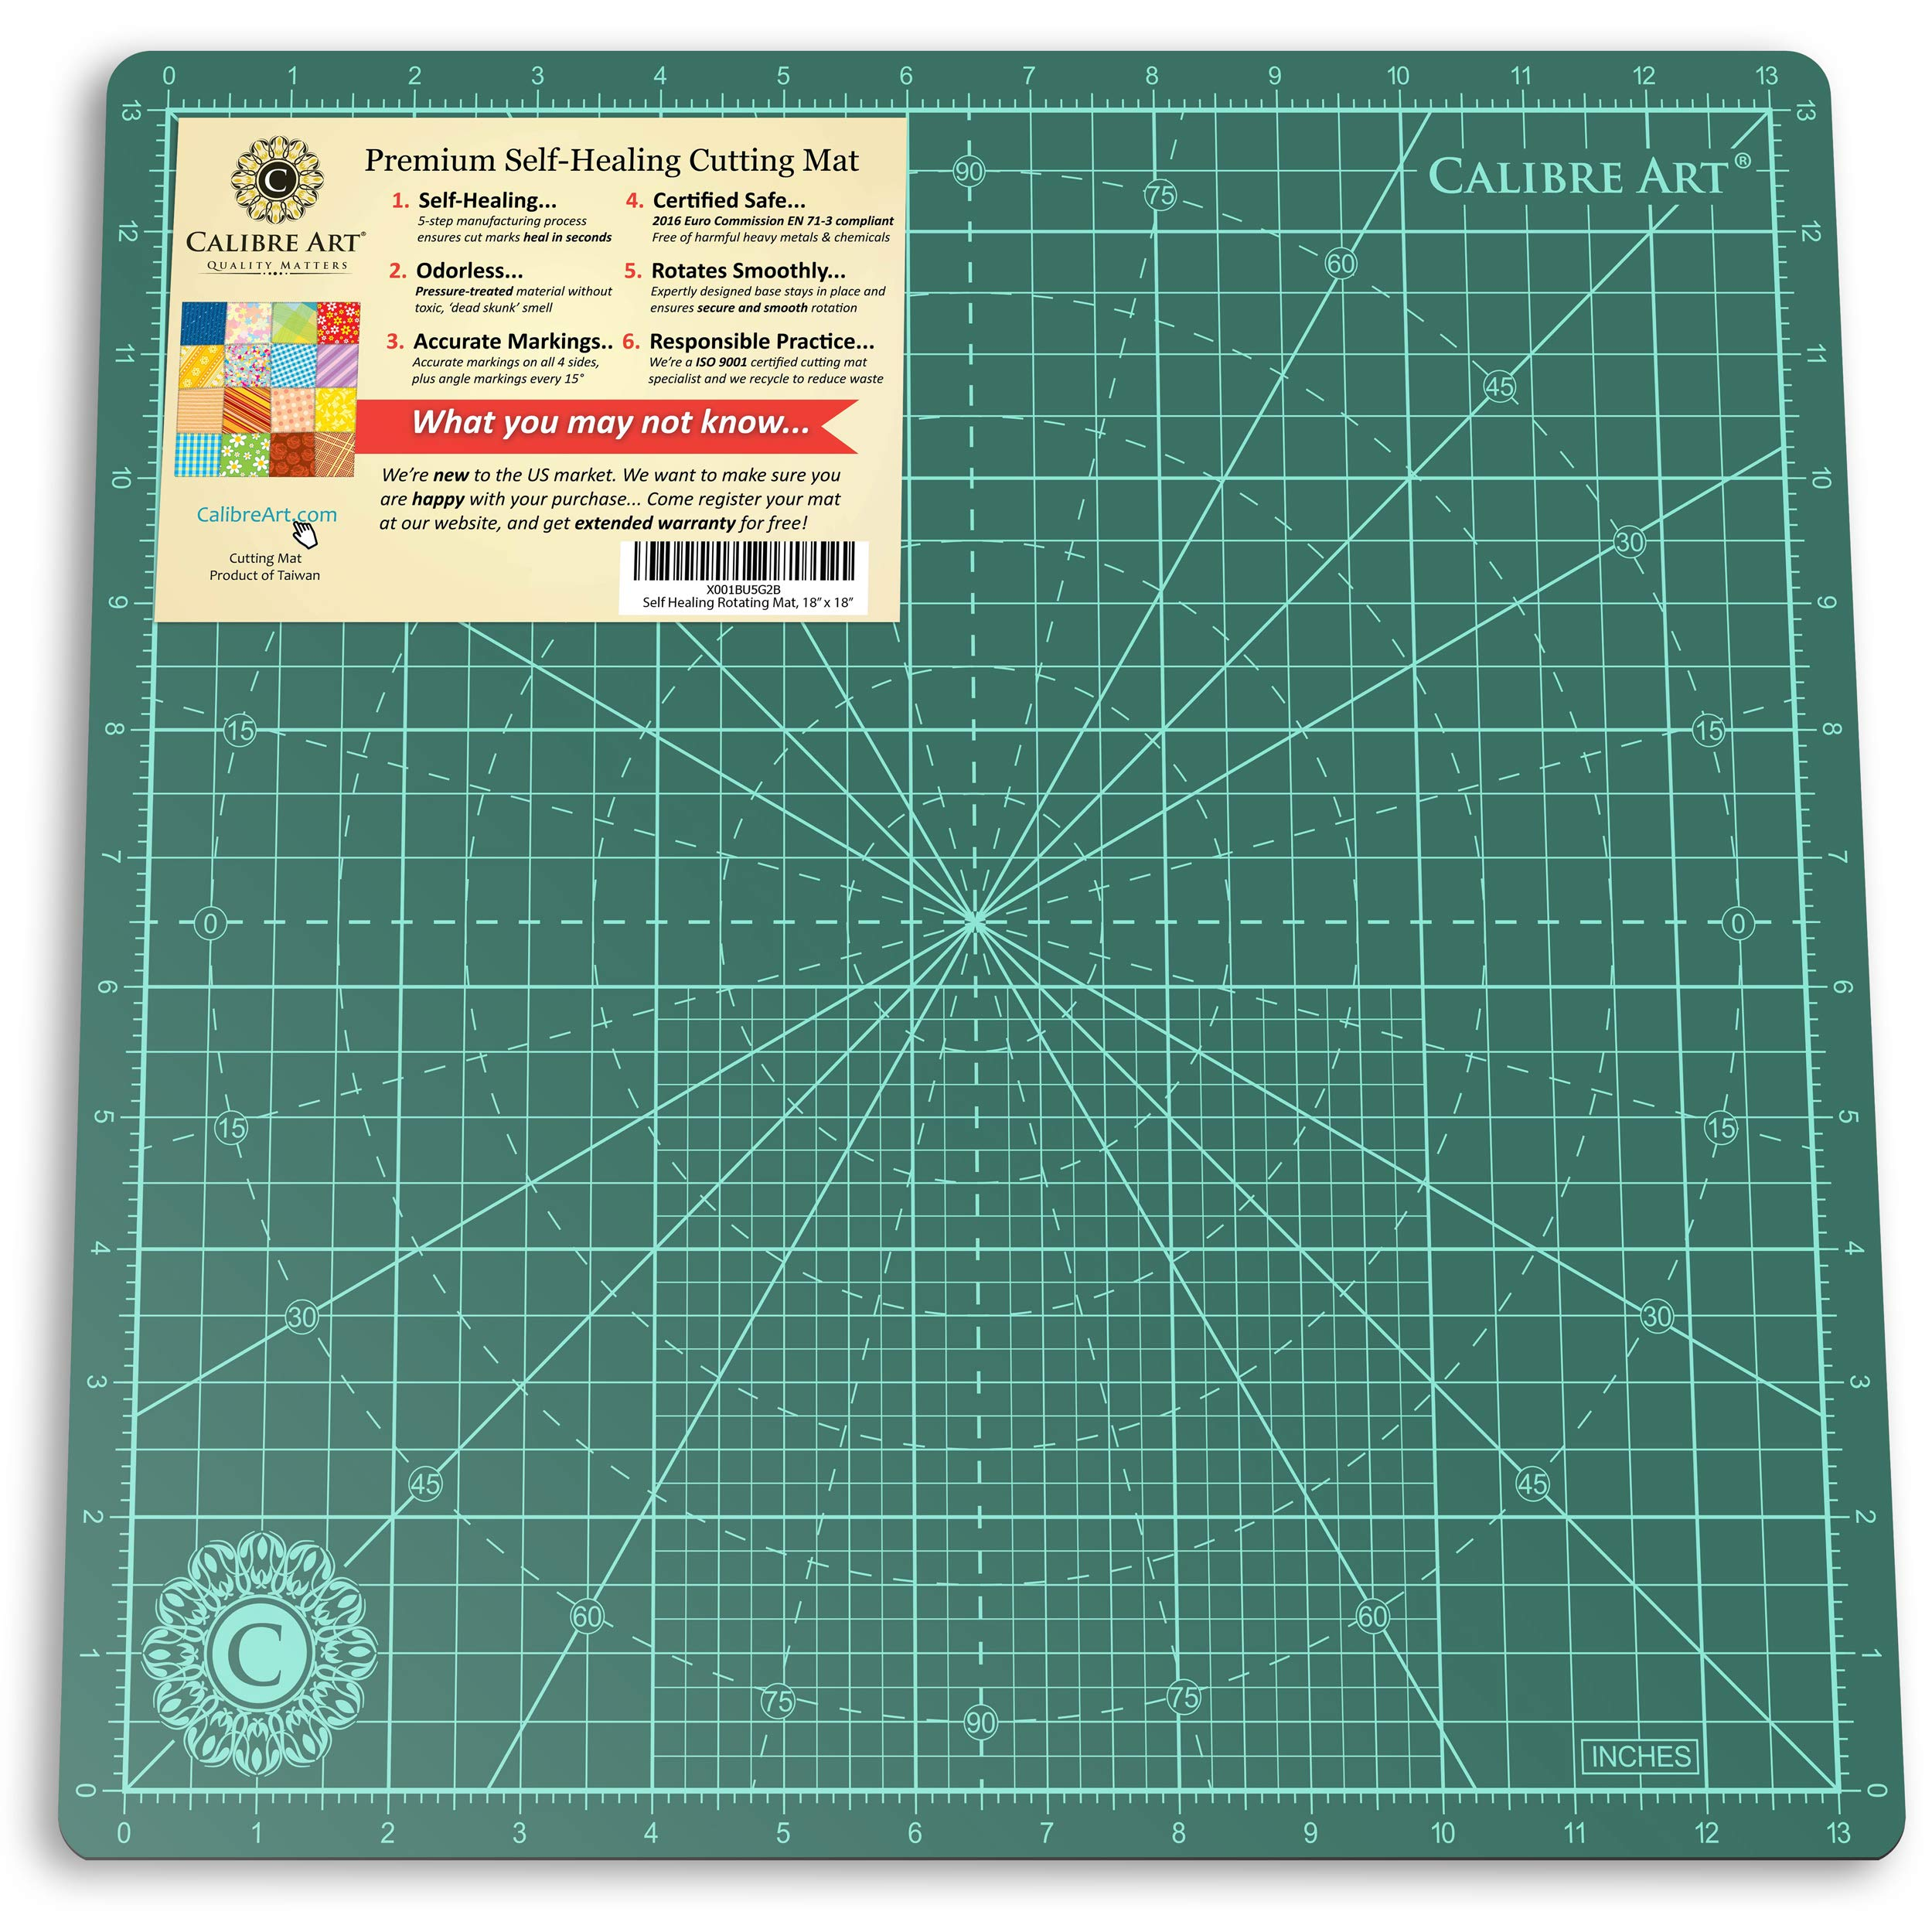 Calibre Art Rotating Self Healing Cutting Mat, Perfect for Quilting & Art Projects, 14x14 (13'' grid)